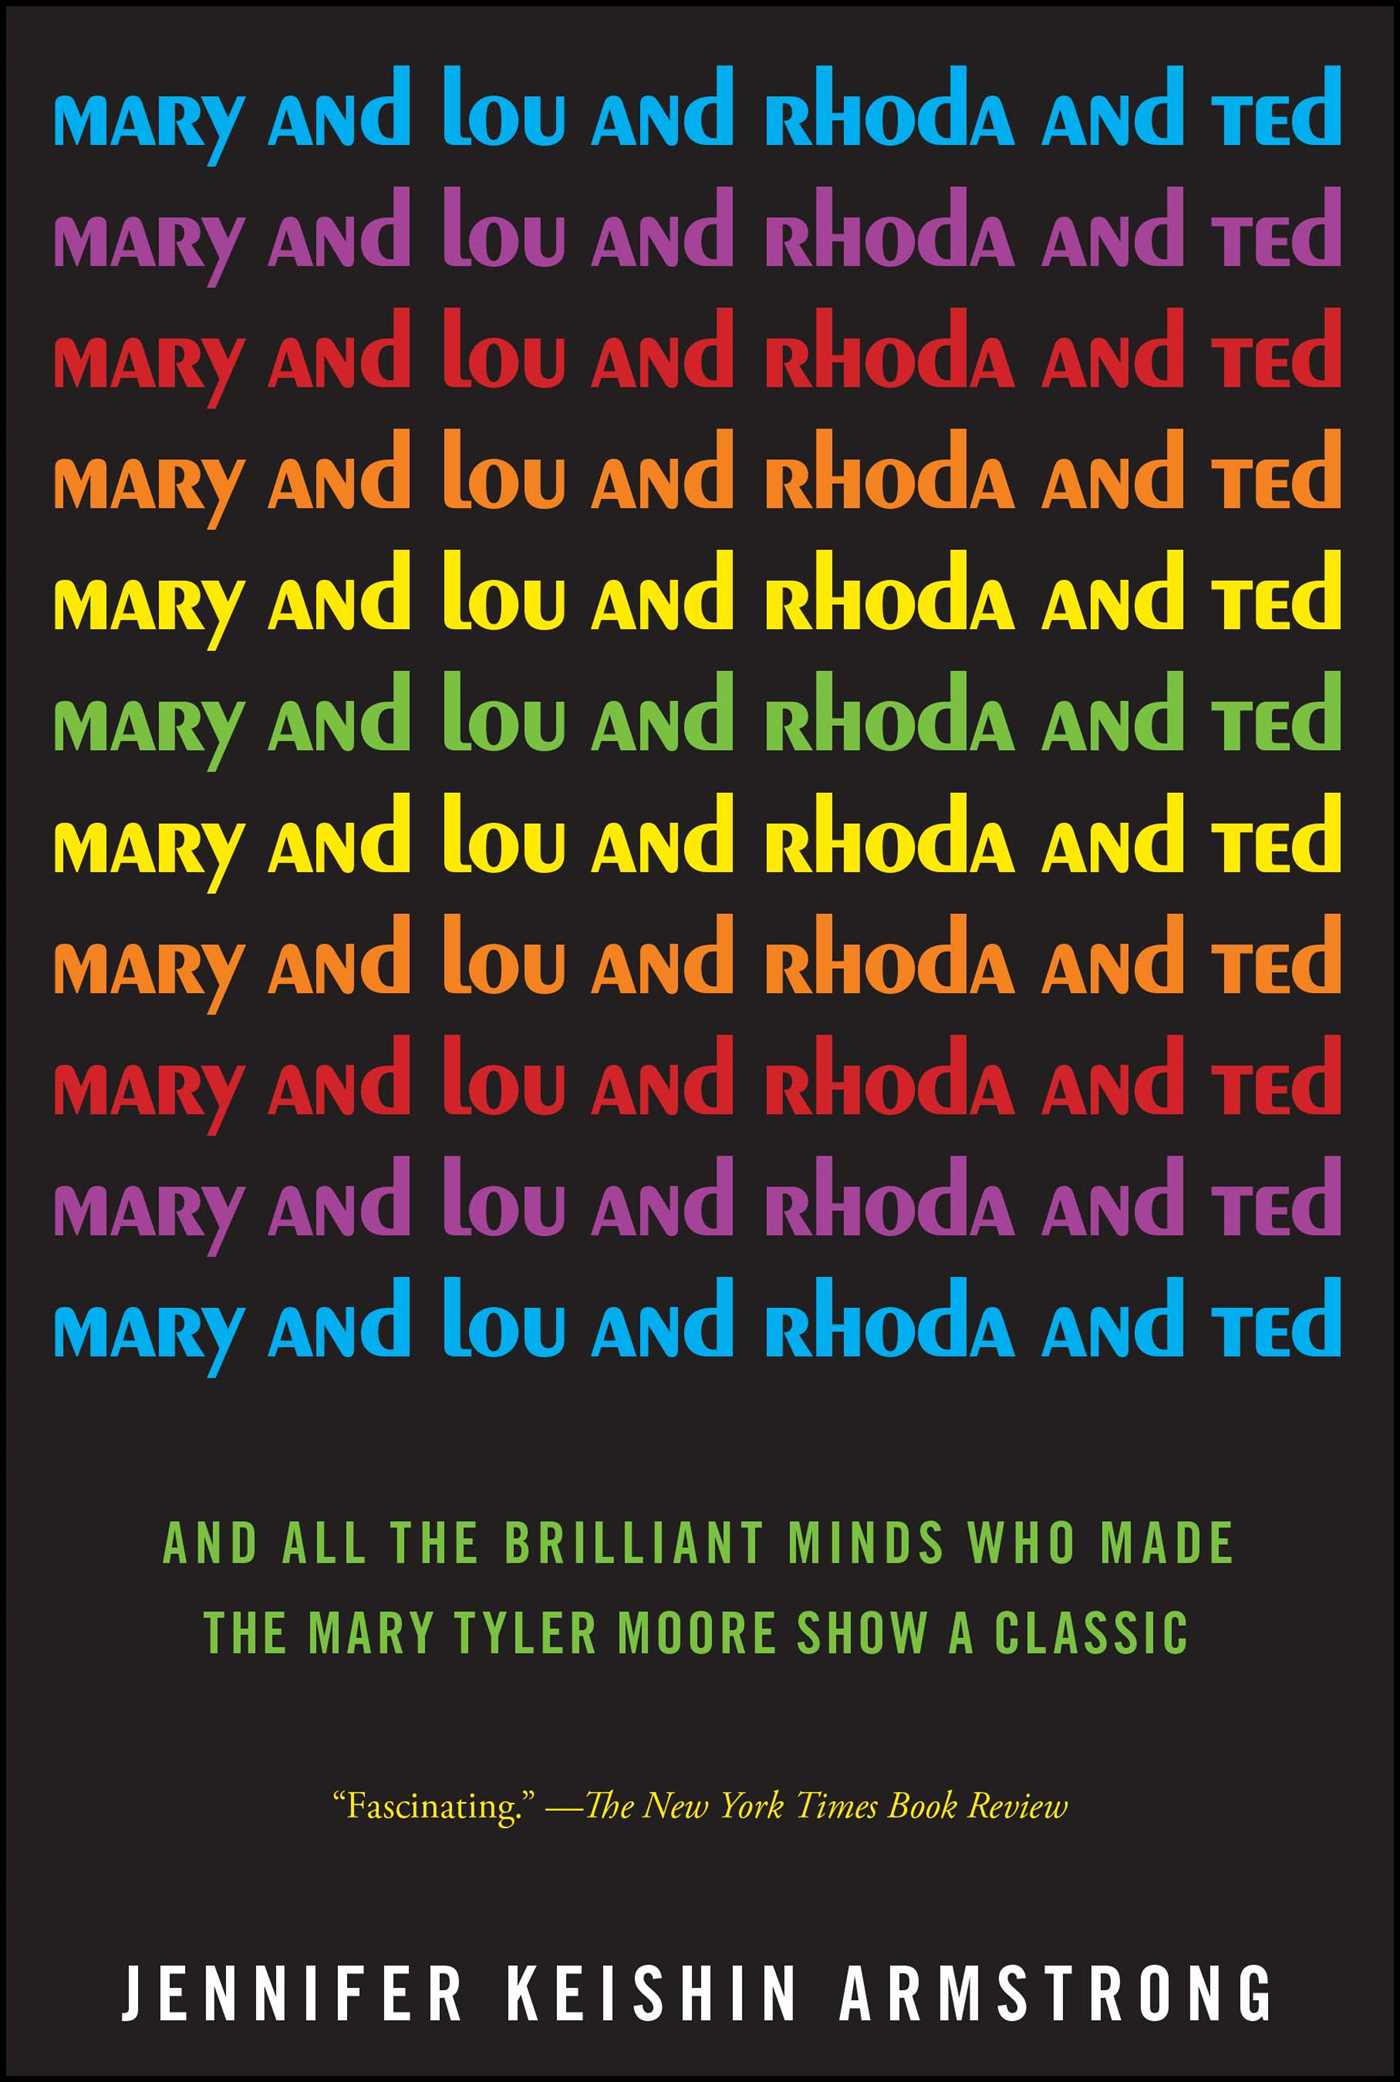 Mary and lou and rhoda and ted 9781451659238 hr